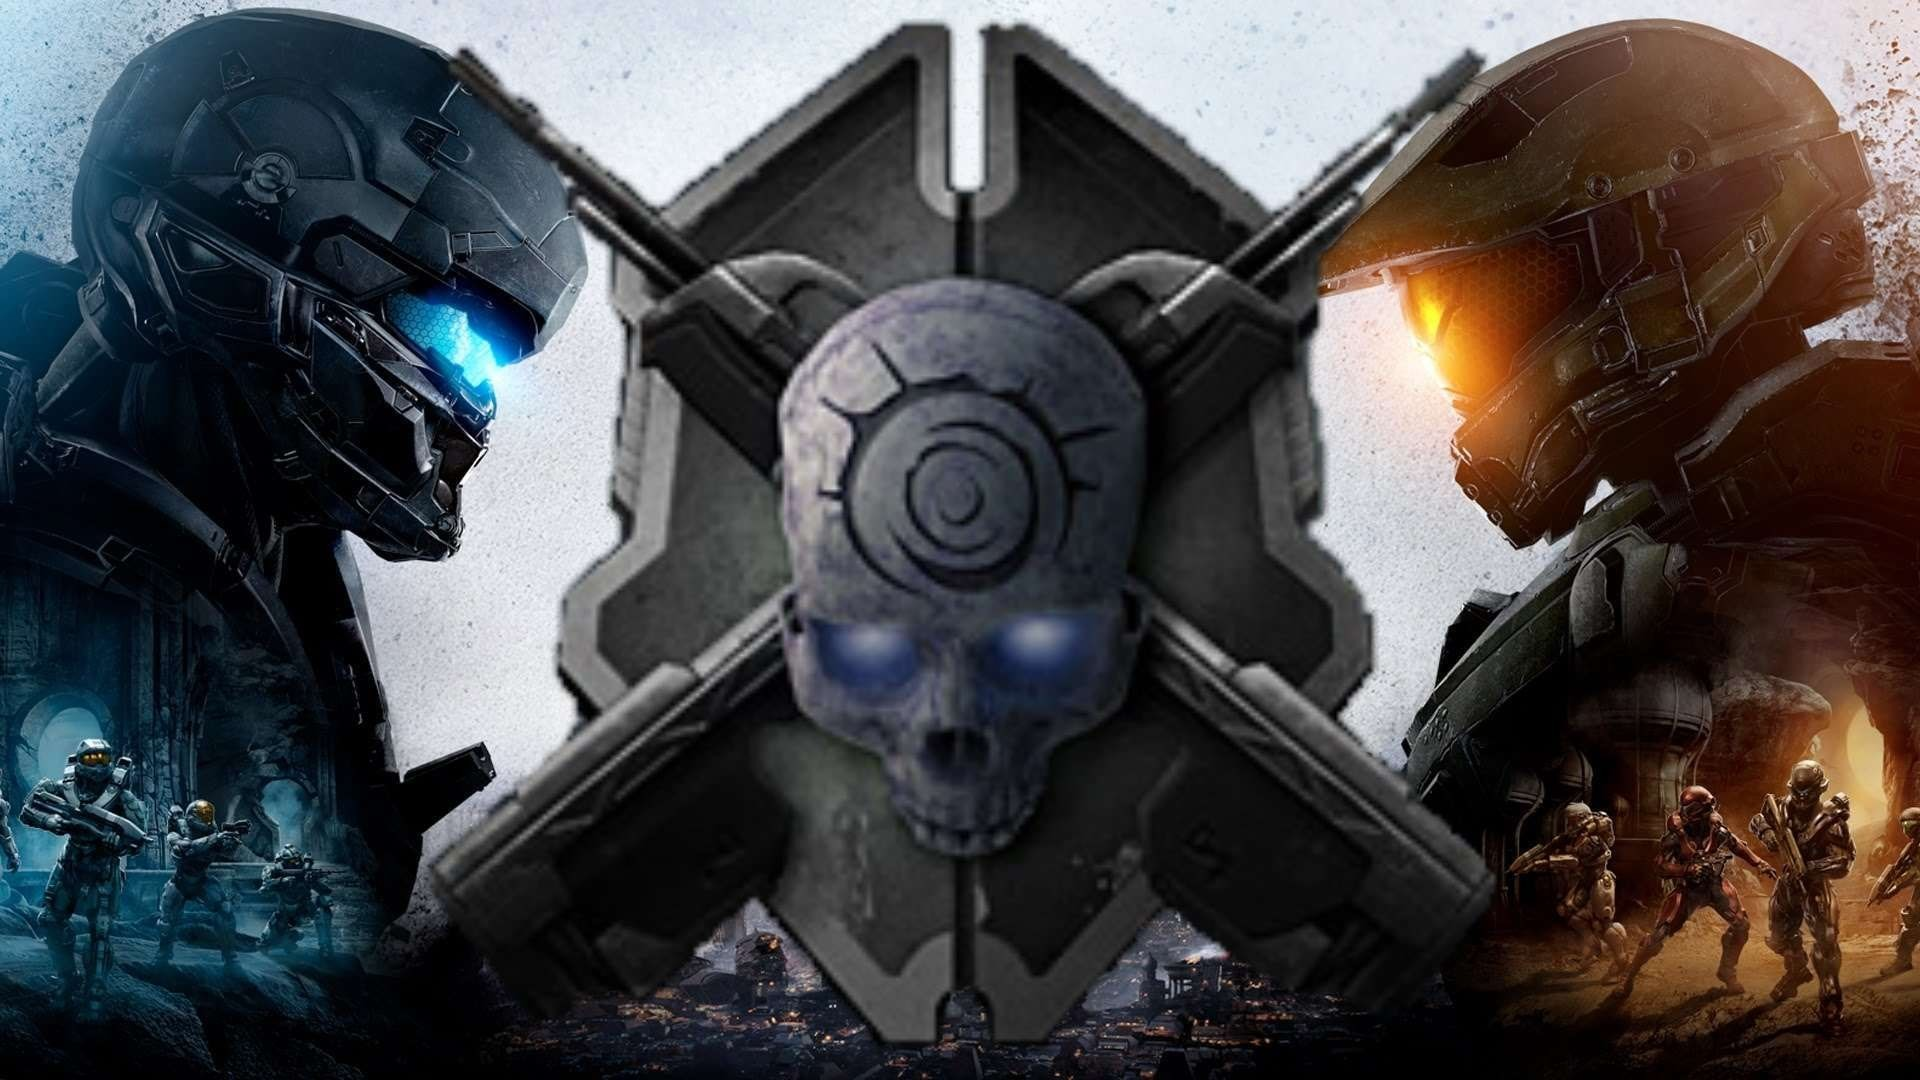 halo 5 wallpapers hd 1080p …